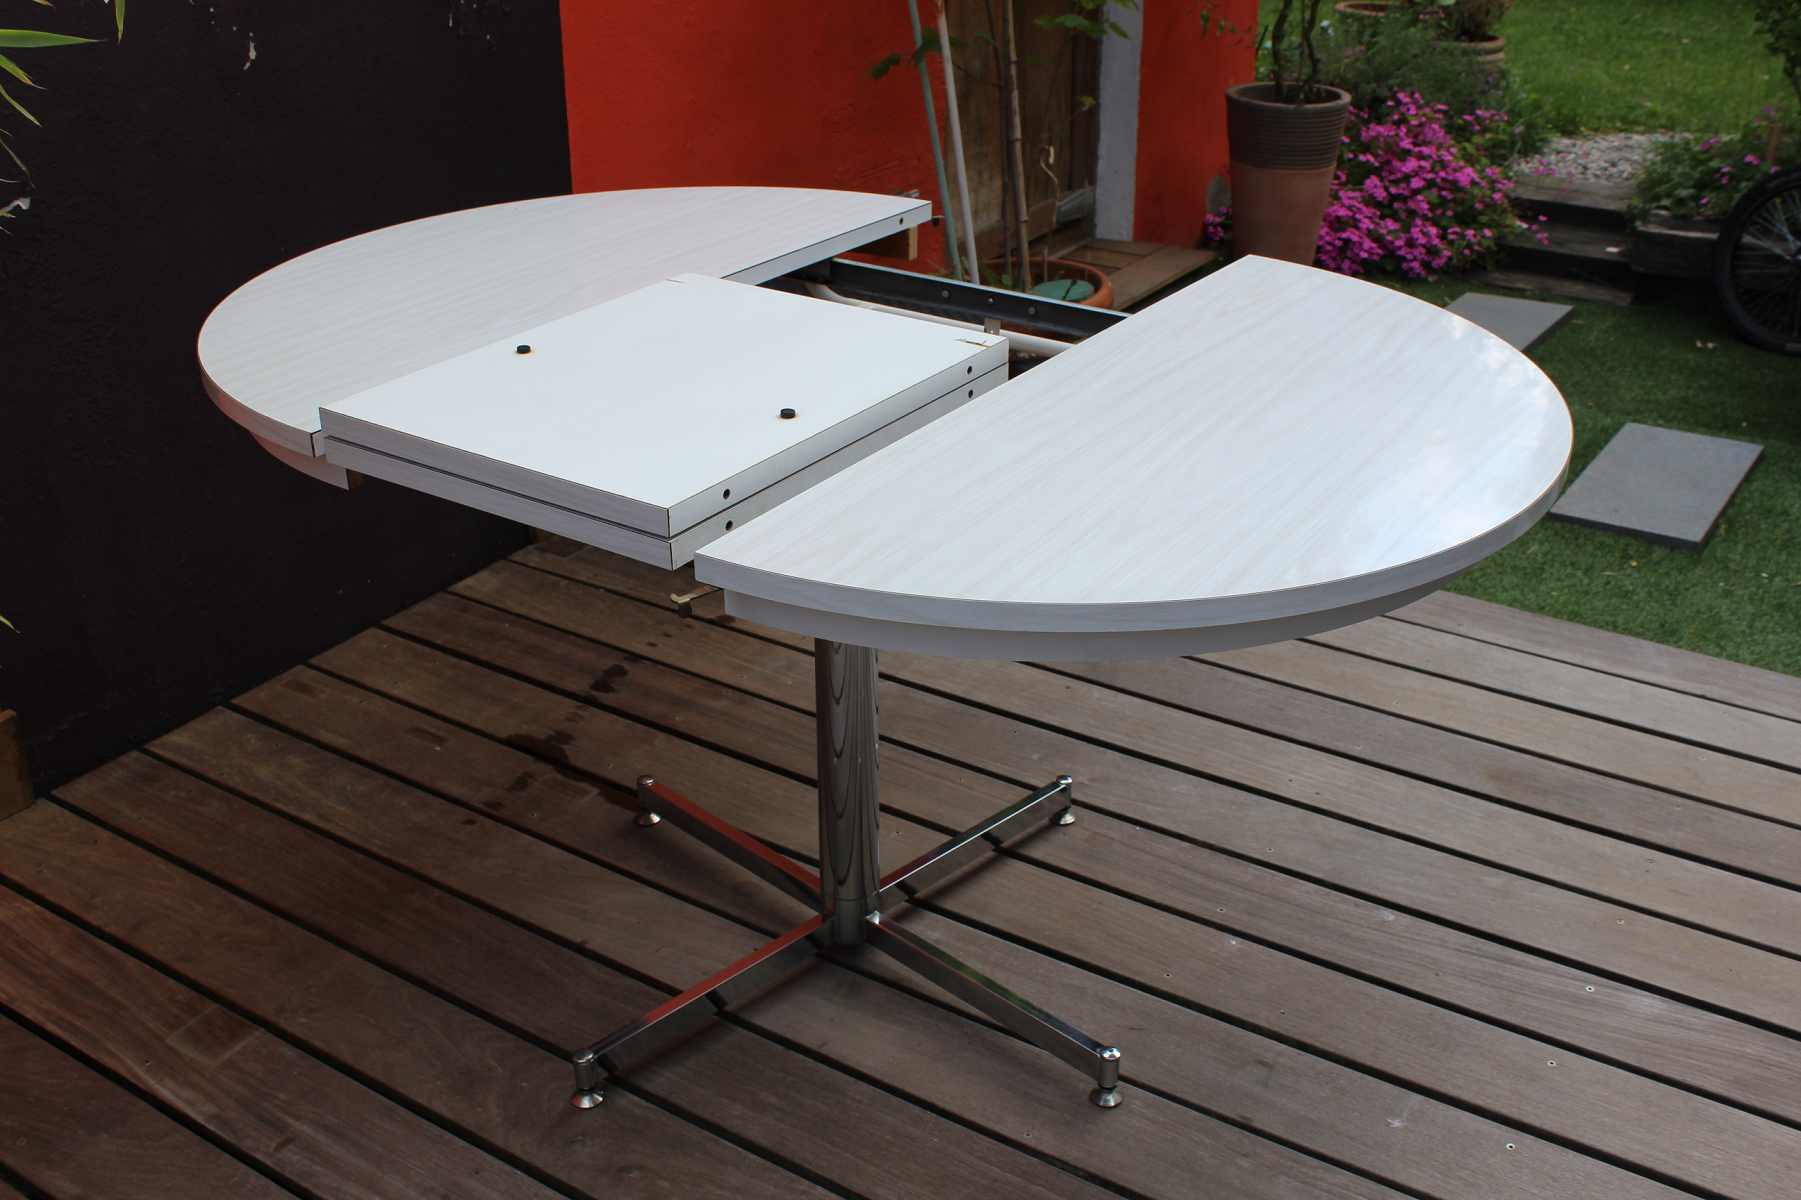 Table formica en version ronde ou ovale vintage by fabichka for Table basse ronde ou ovale